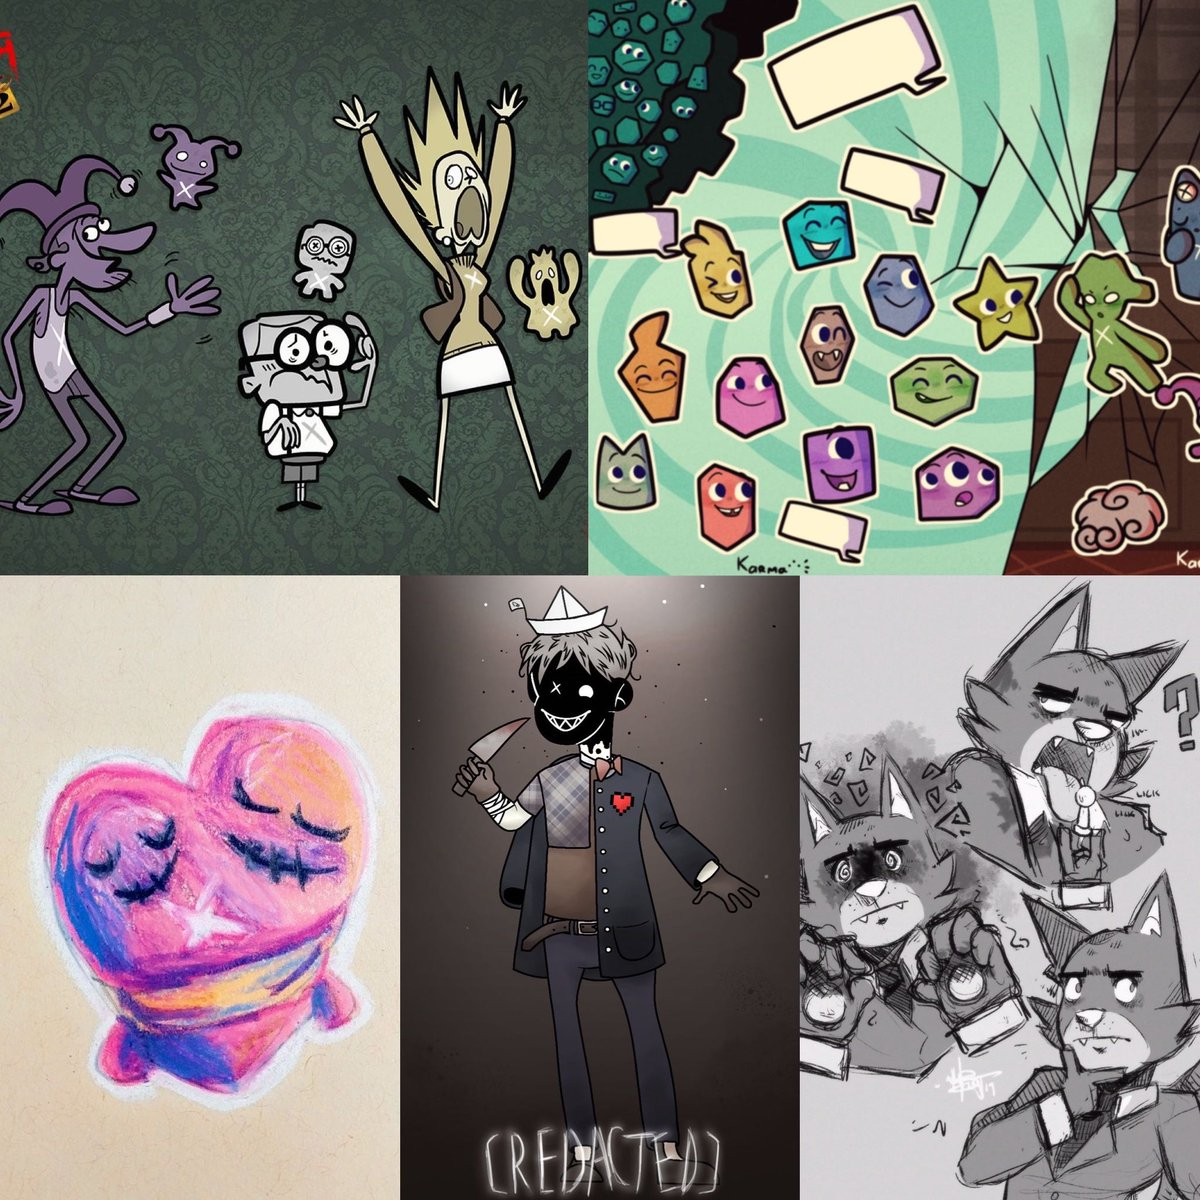 It's #FanartFriday! Head on over to #JackboxFanart to check out some of the amazing creations our fans have been posting in the last few weeks!